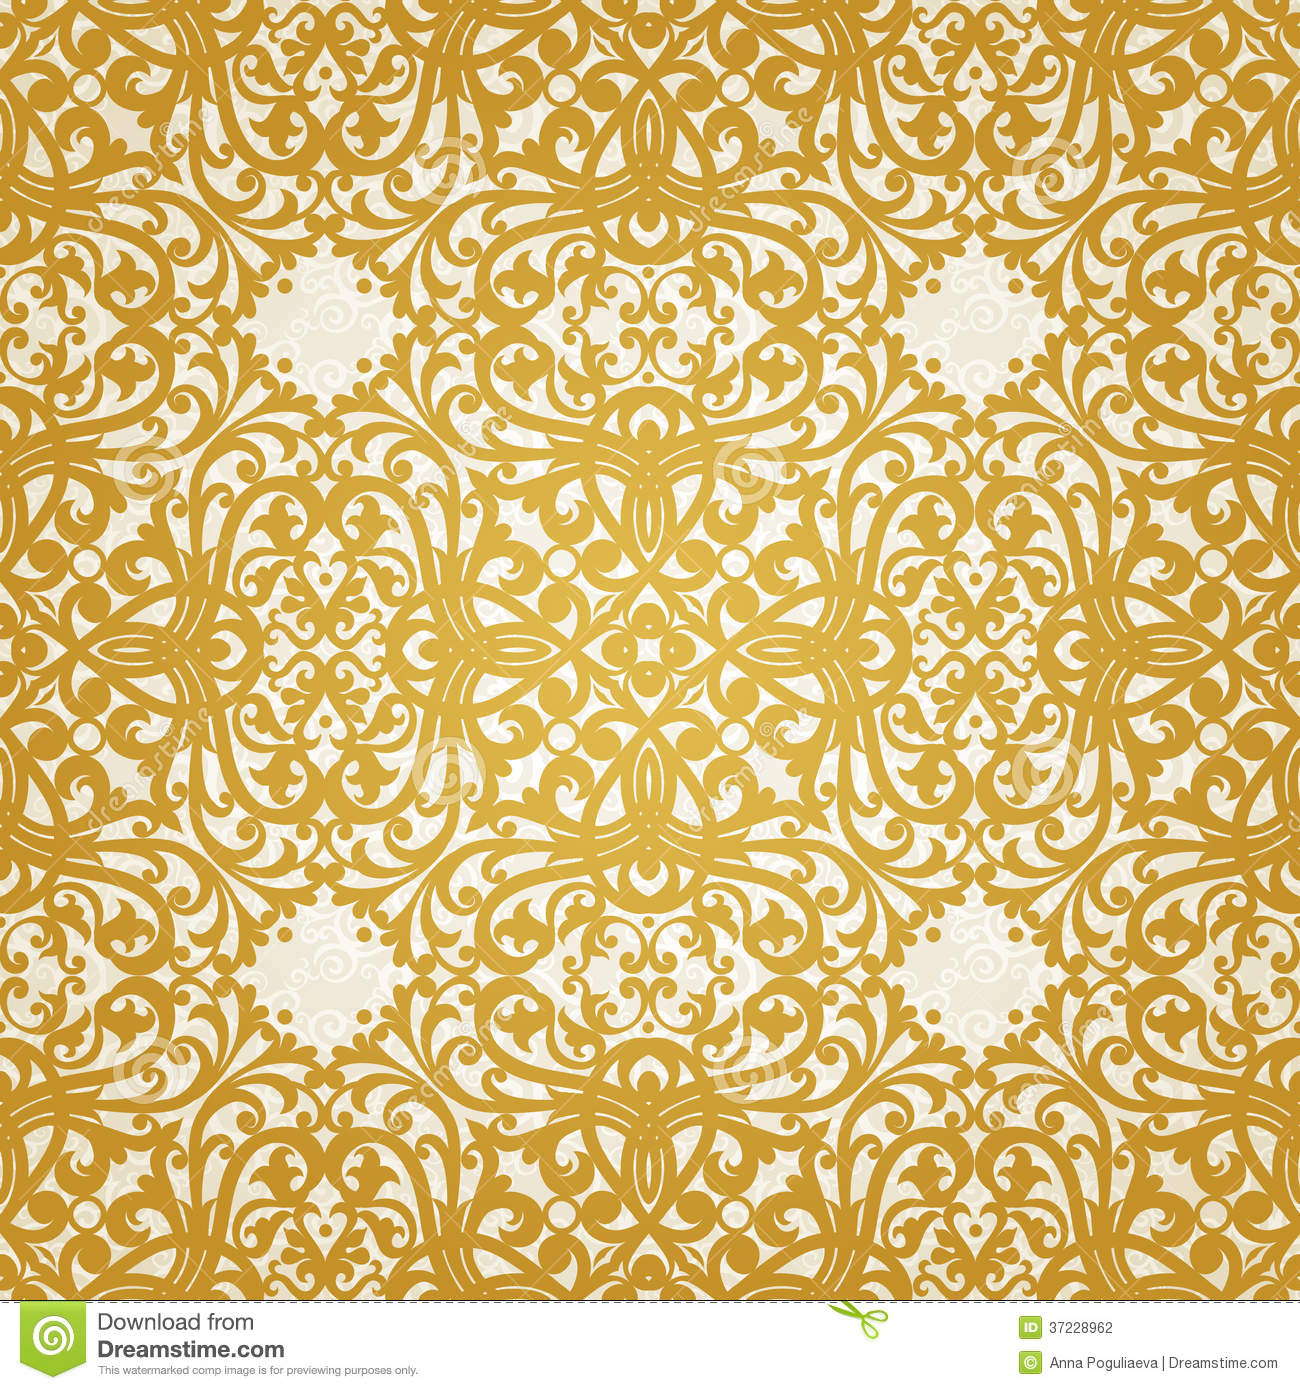 As Royal Decor 3d Wallpaper Vector Seamless Pattern With Swirls And Floral Motifs In